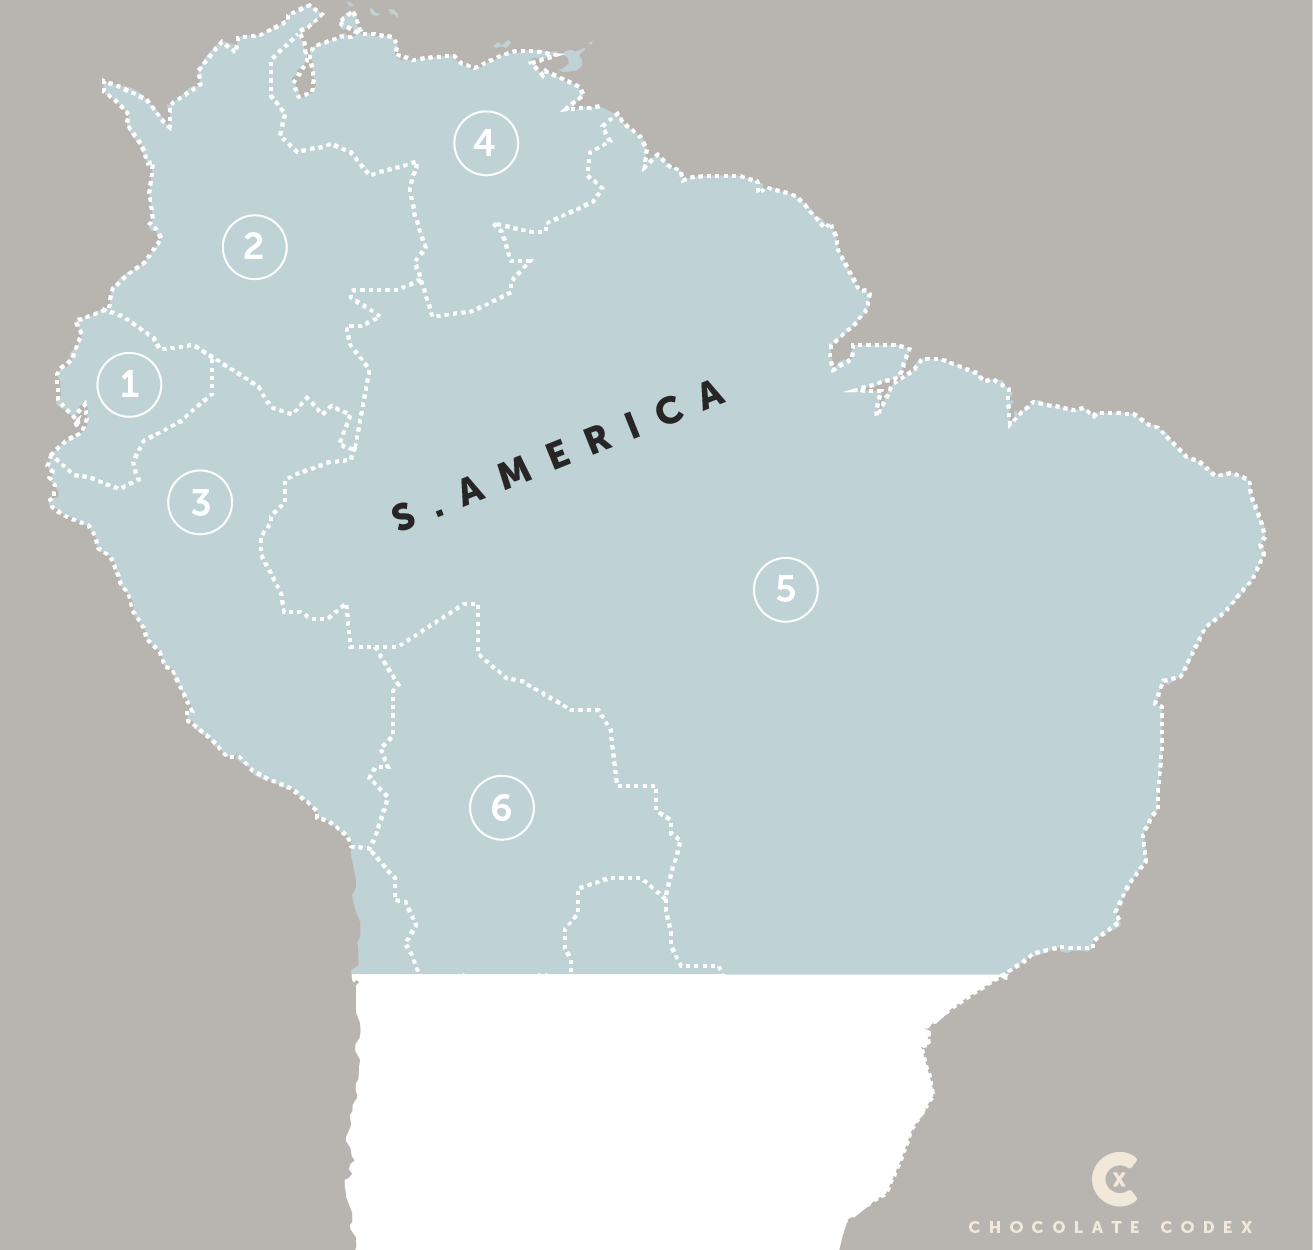 Chocolate-Codex-Countries-of-Origin-Cacao-North-Central-America